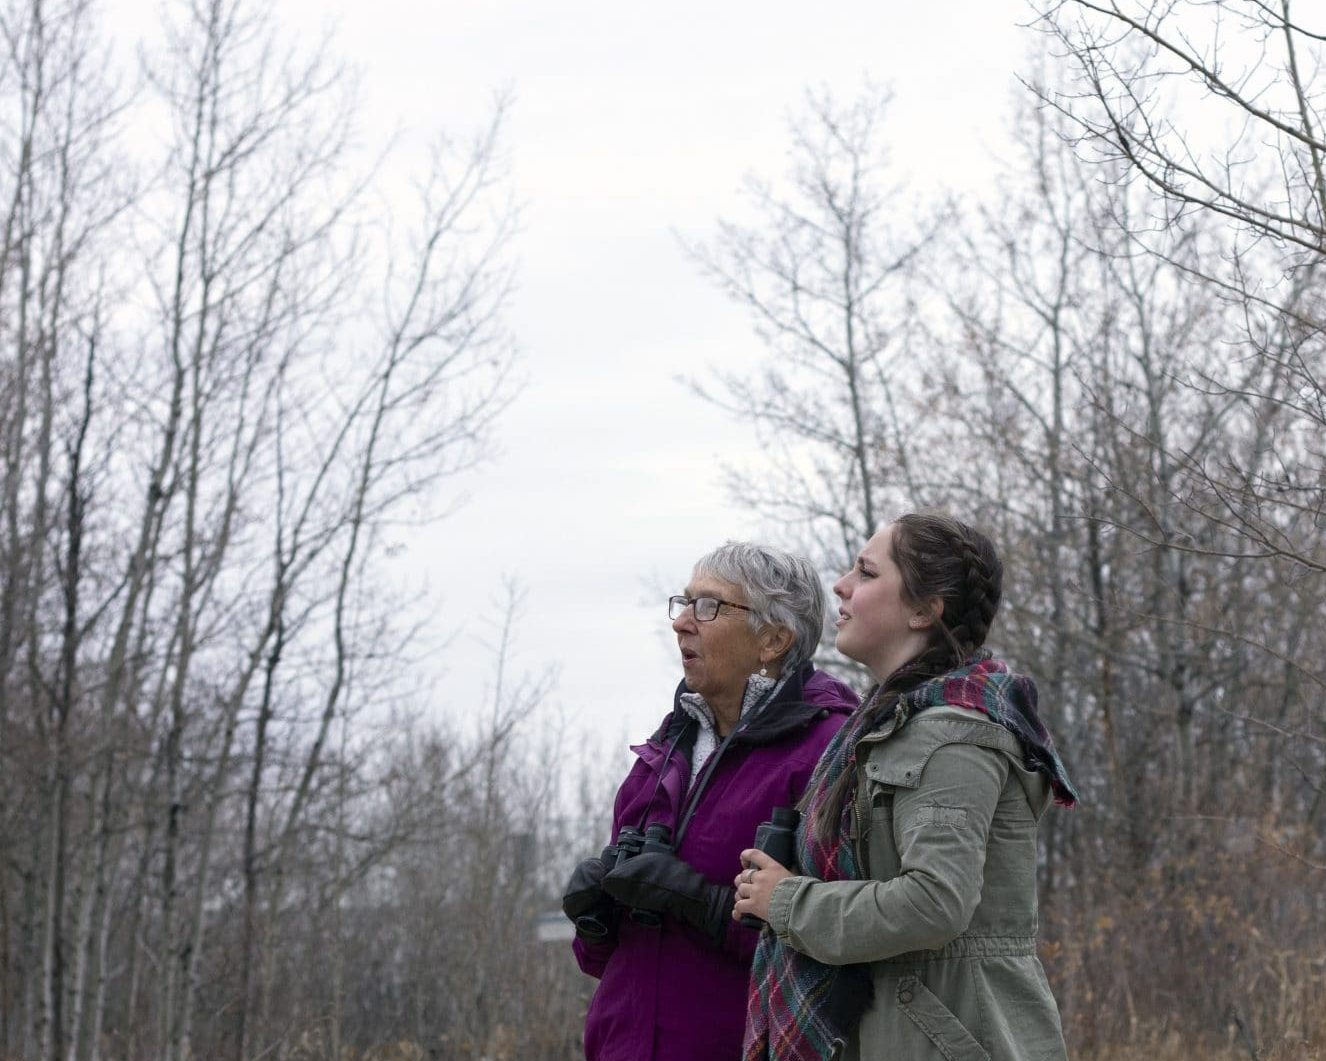 Barbara and Madeleine look at a bird in the trees.